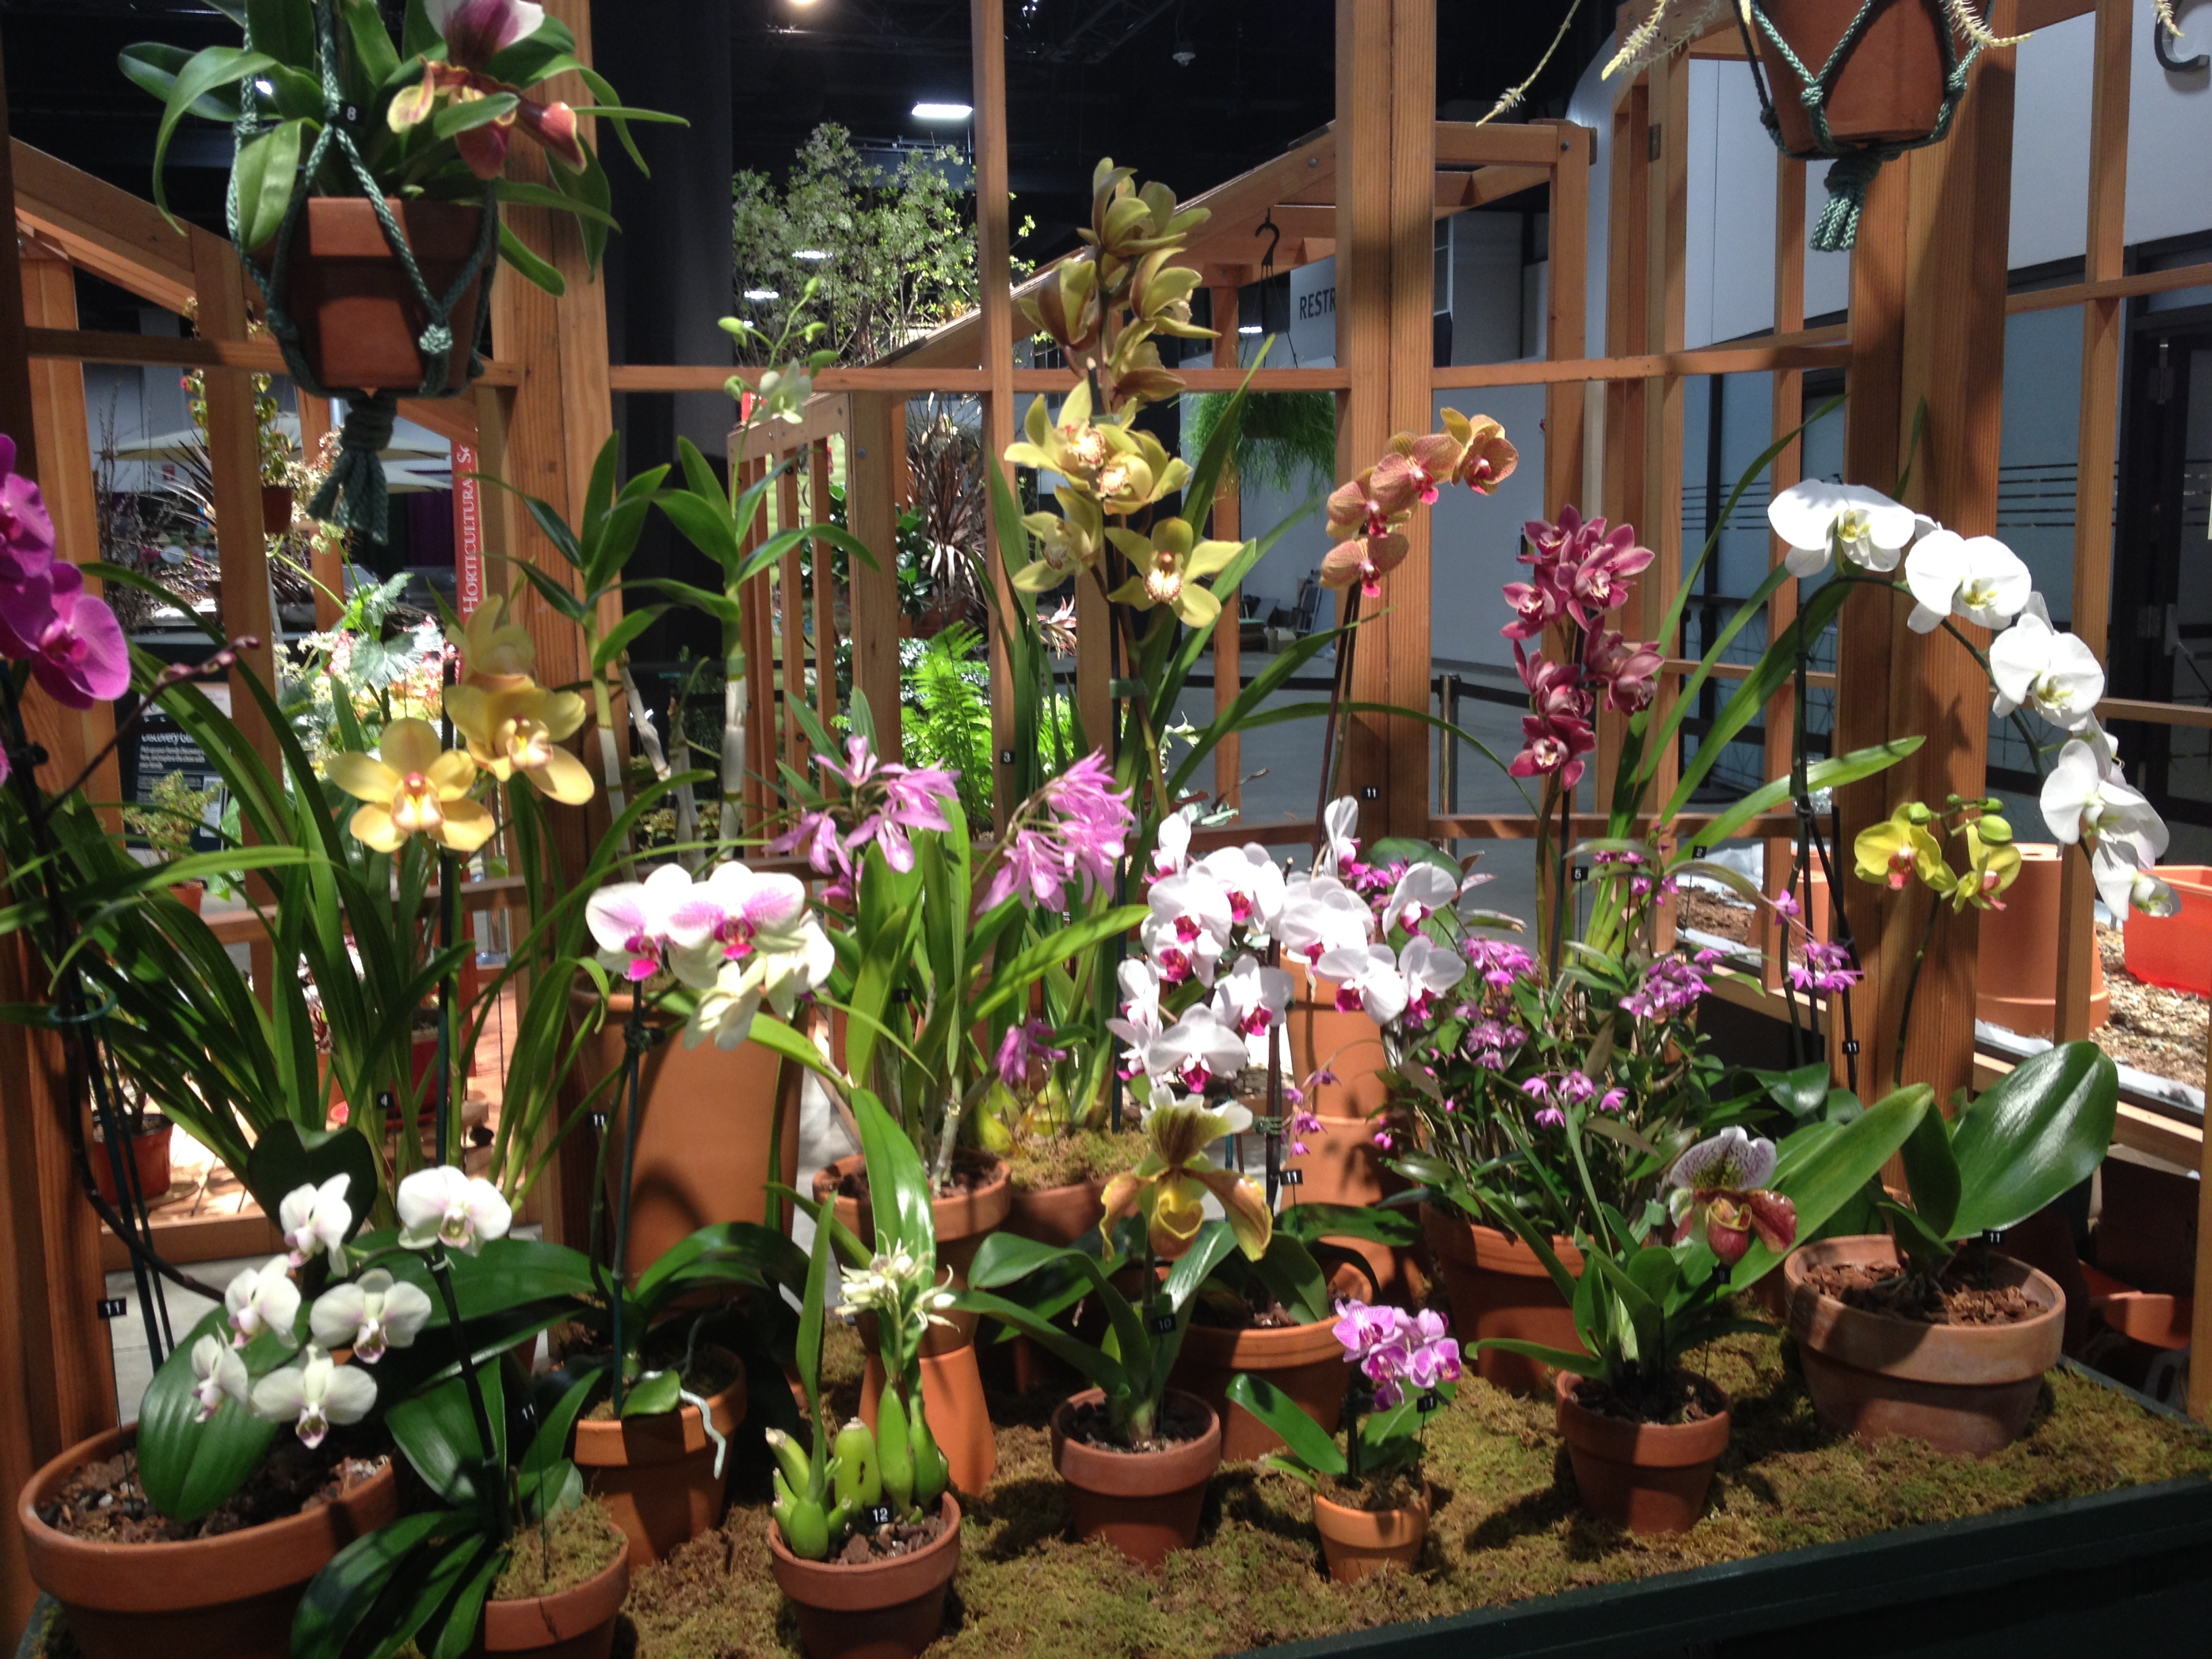 Boston Flower and Garden Show 2015 | OF GARDENS